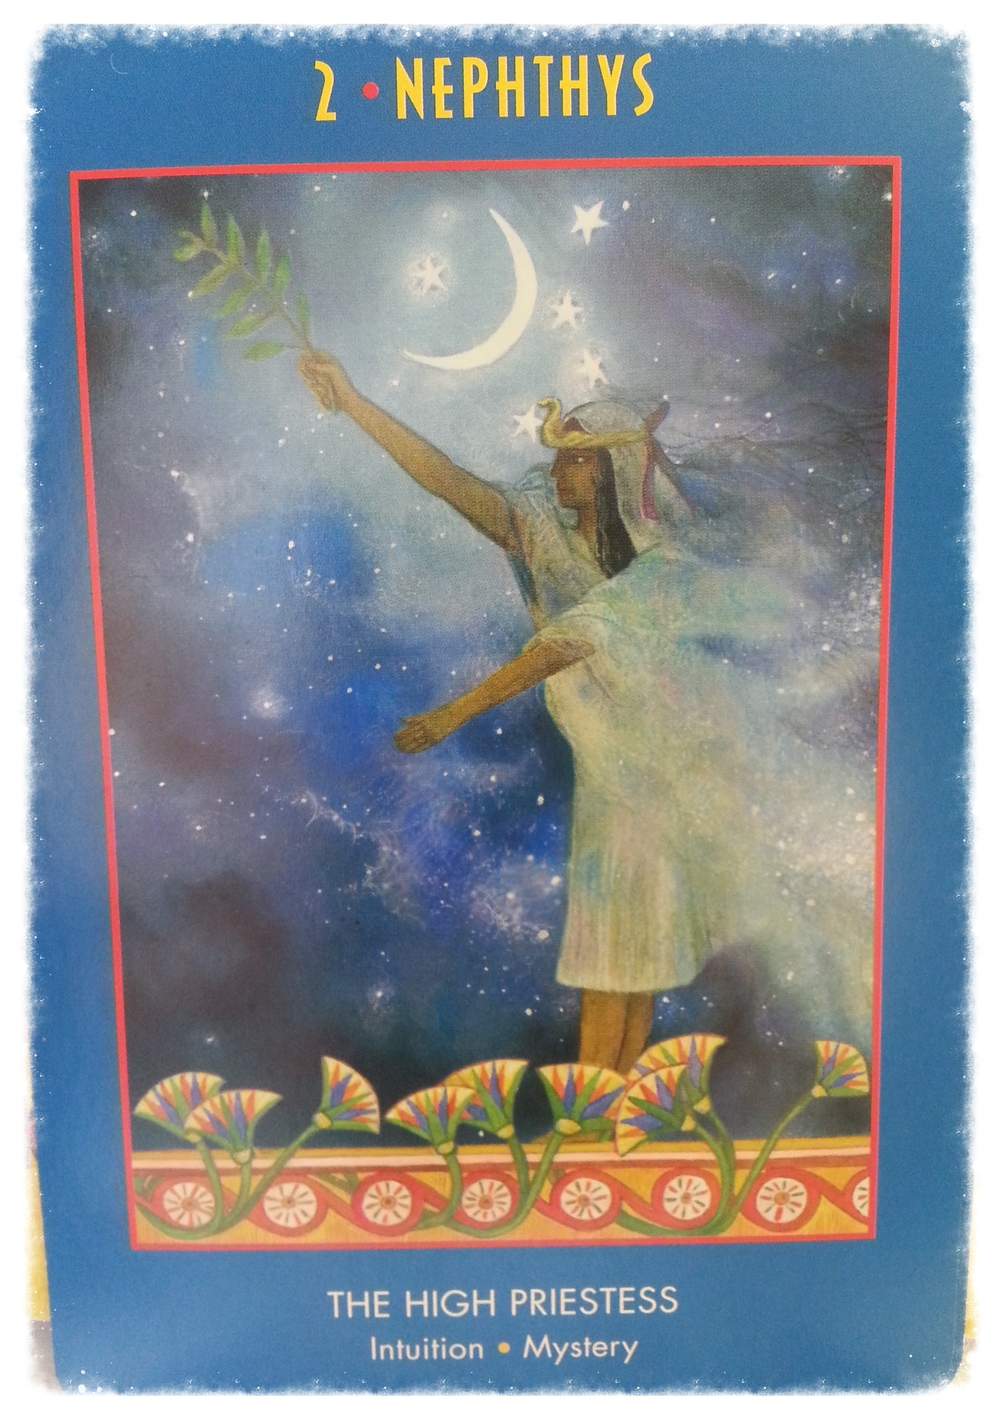 SATURN'S DAY AUGUST 22 2015   CARD 2- NEPHTHYS - THE HIGH PRIESTESS        INTUITION- MYSTERY